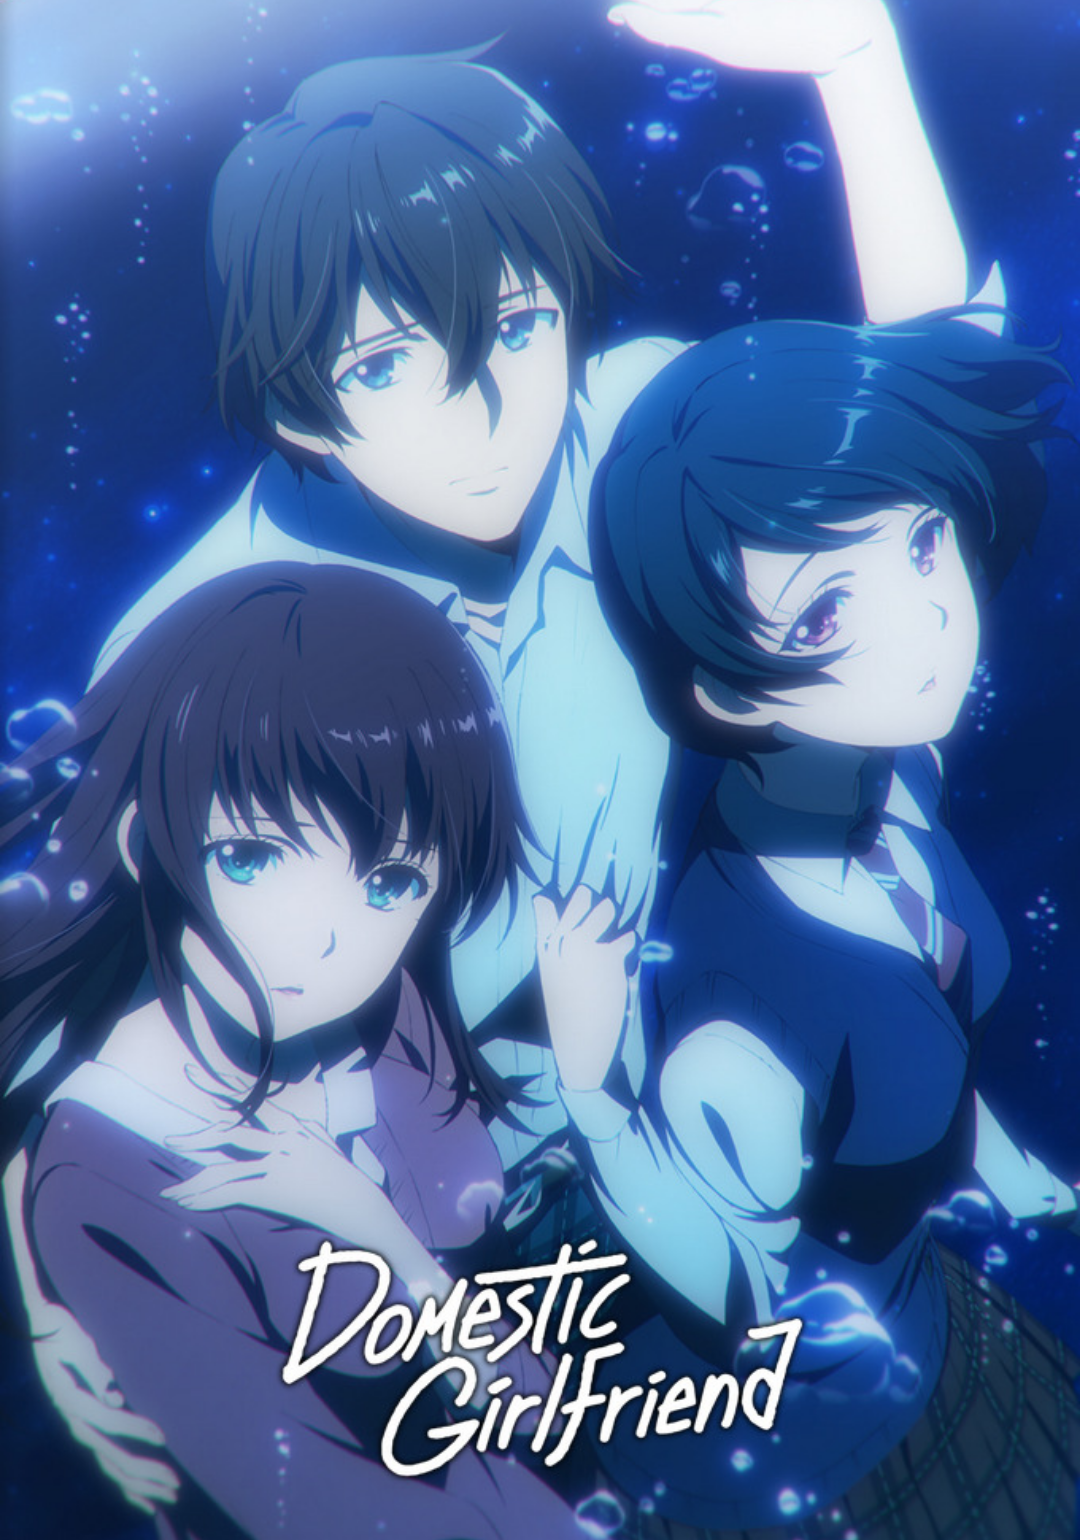 Domestic Girlfriend 2019 Cosplay Anime Anime Pictures